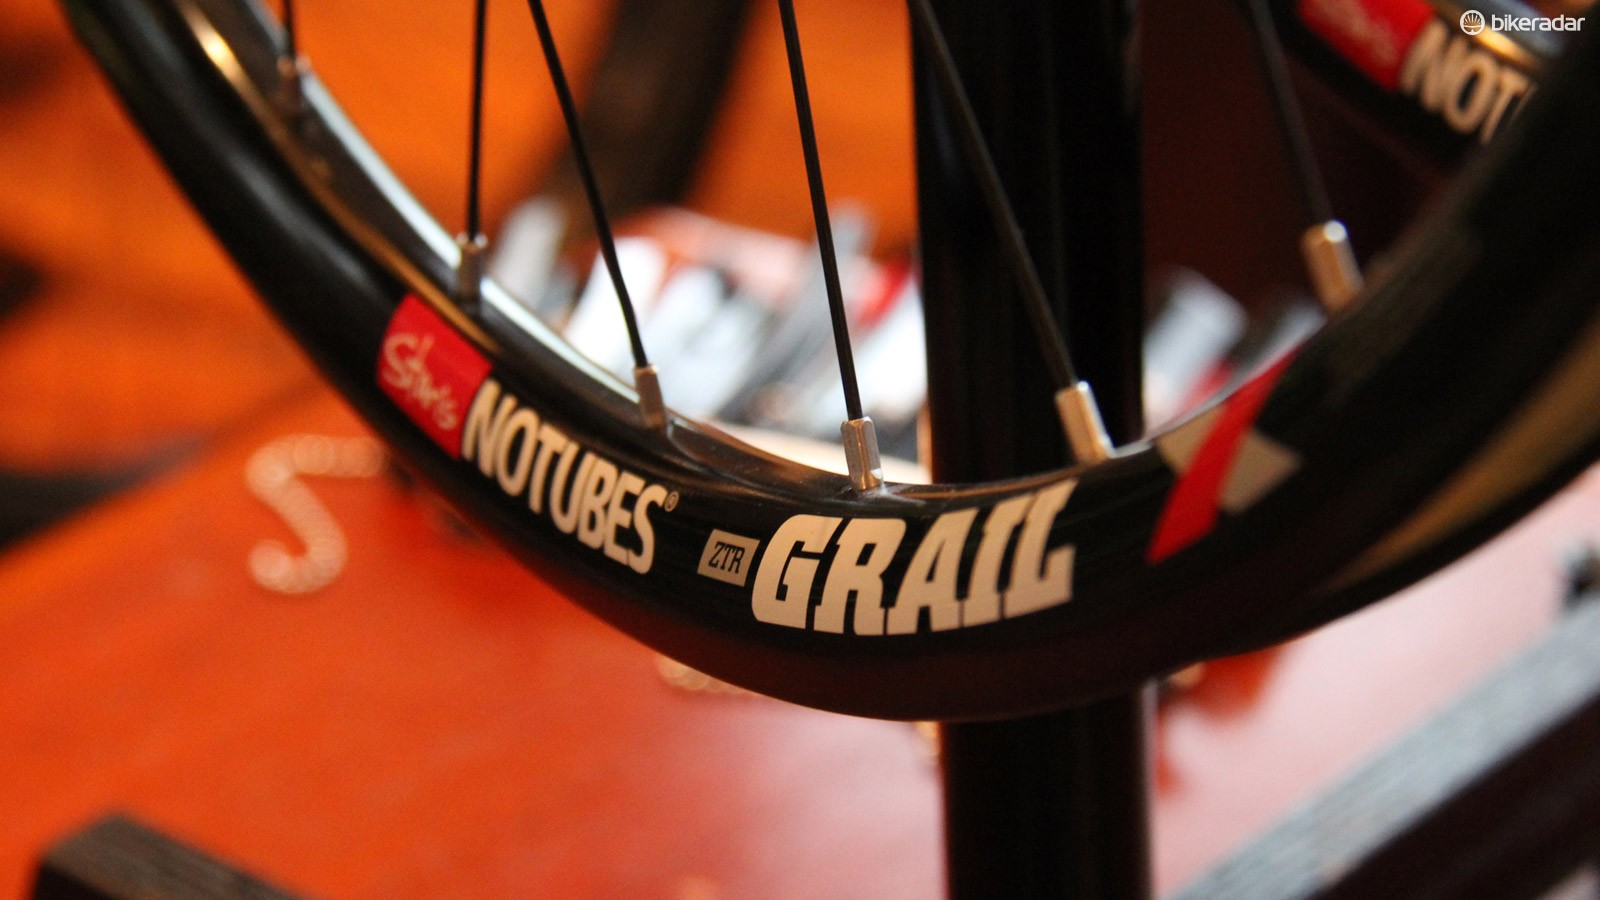 The NoTubes Grail is at home on the road as it is on a cyclocross course